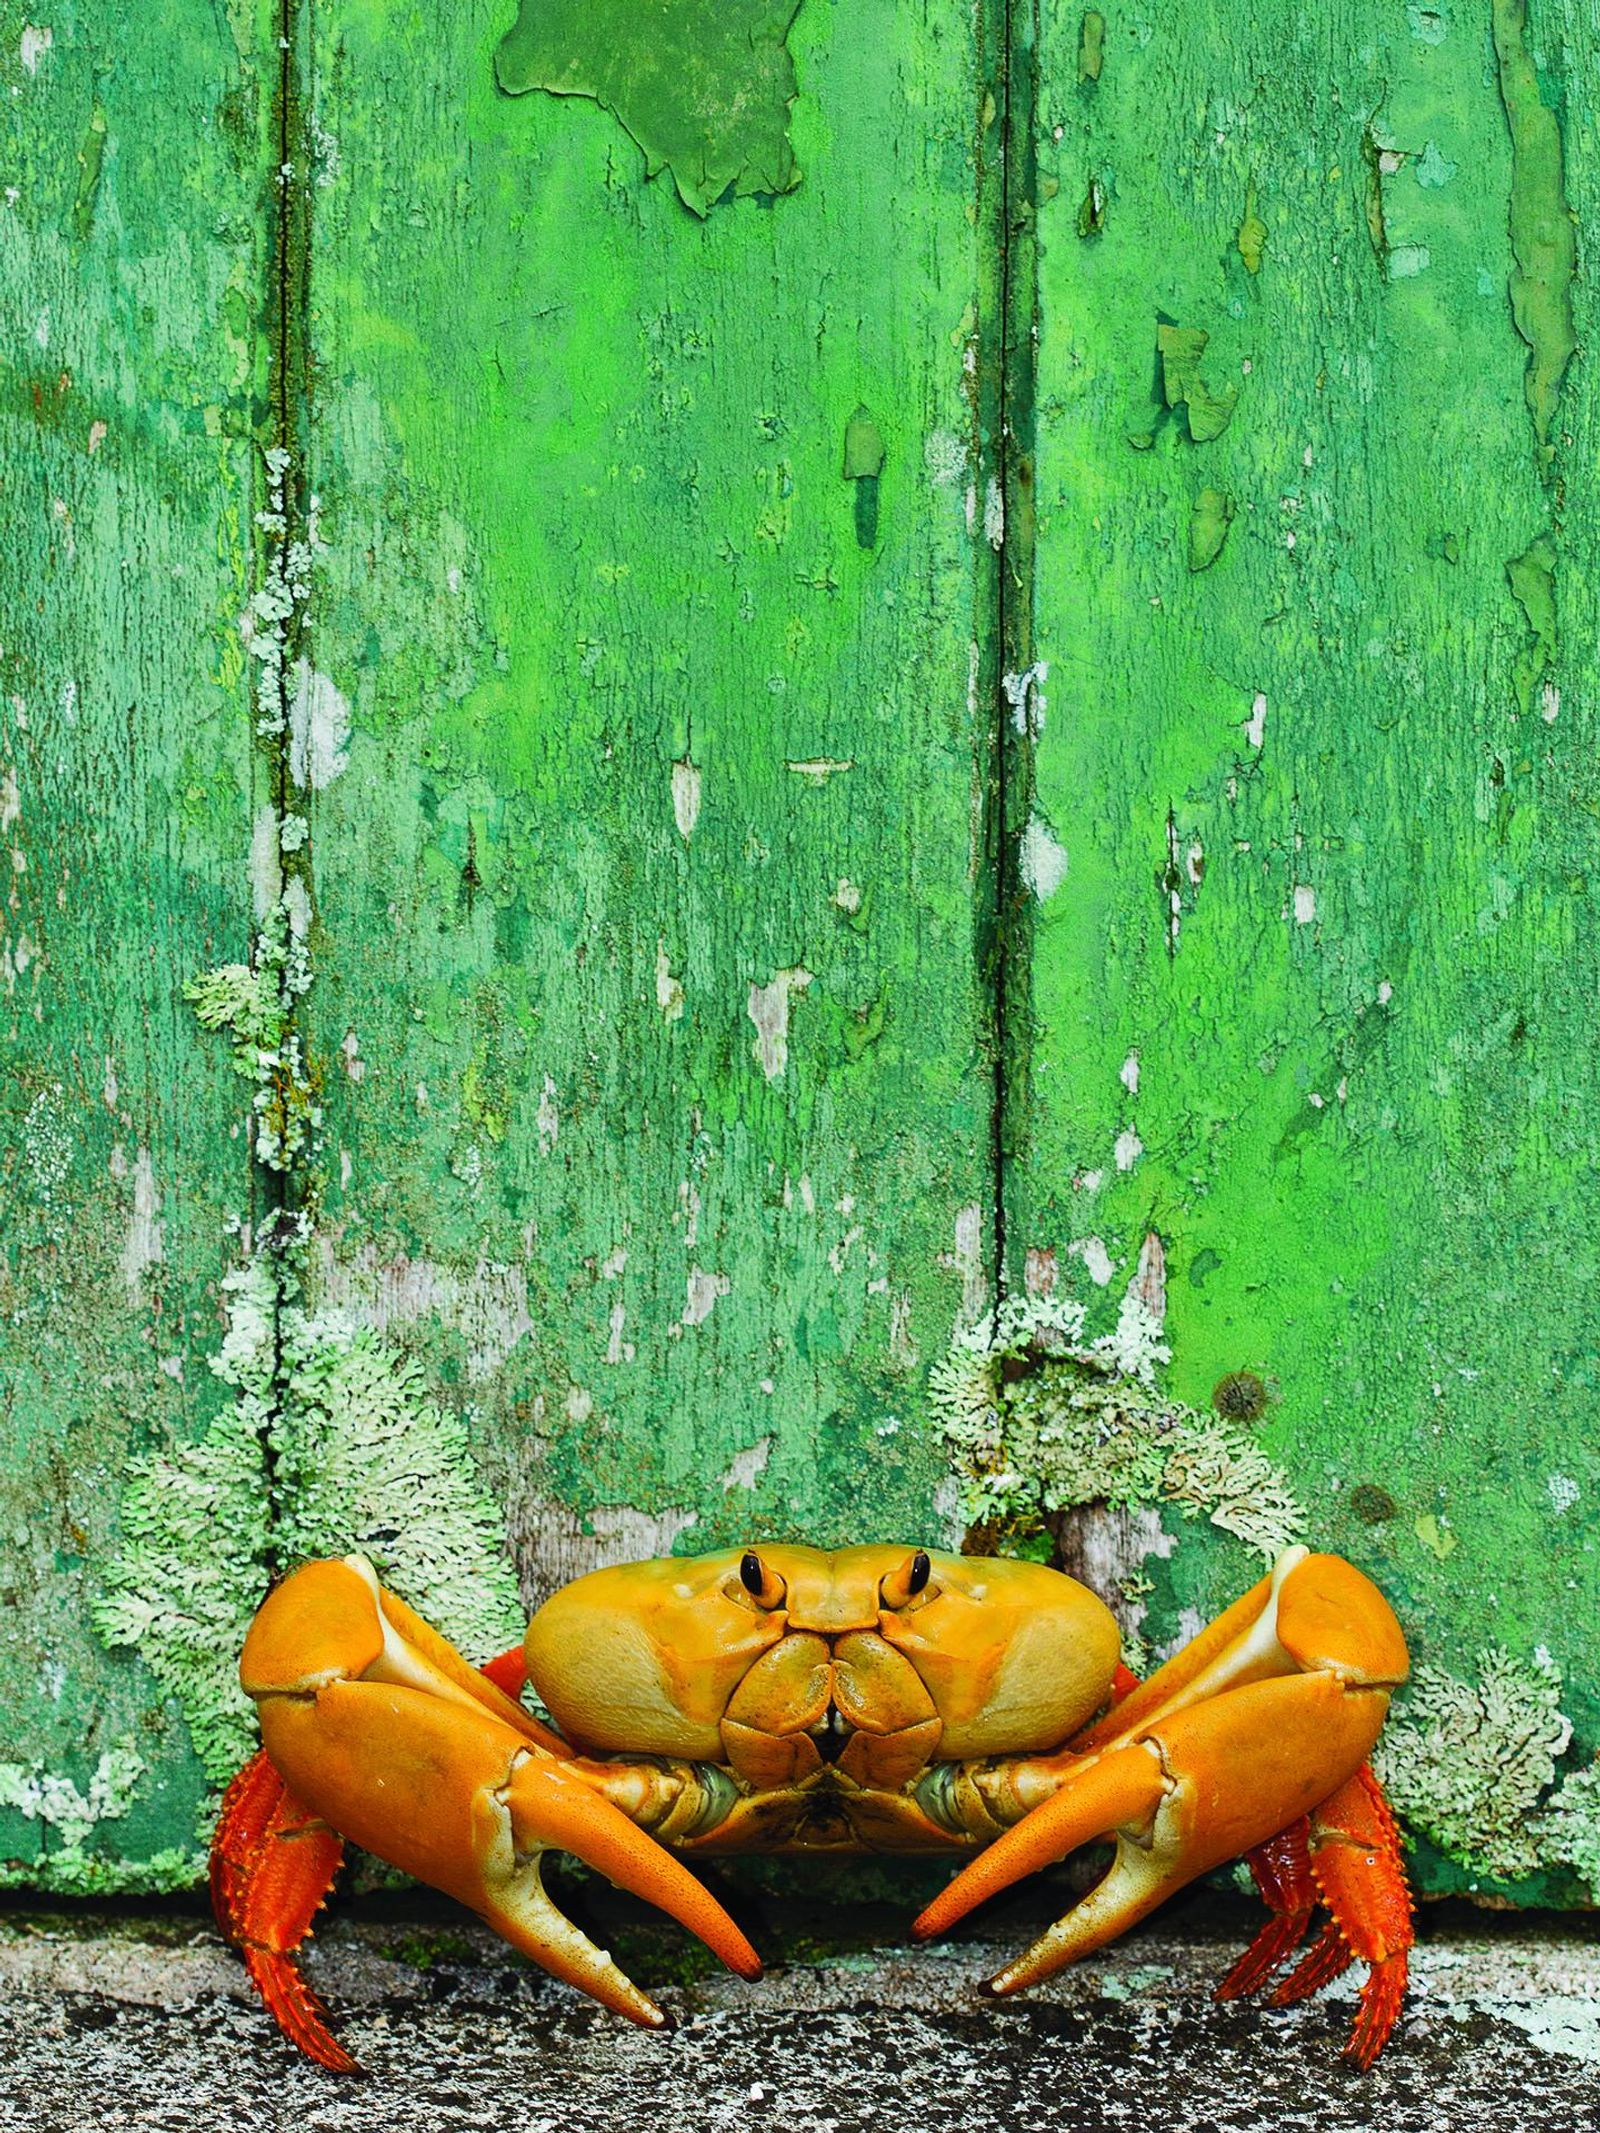 Land crab at the door